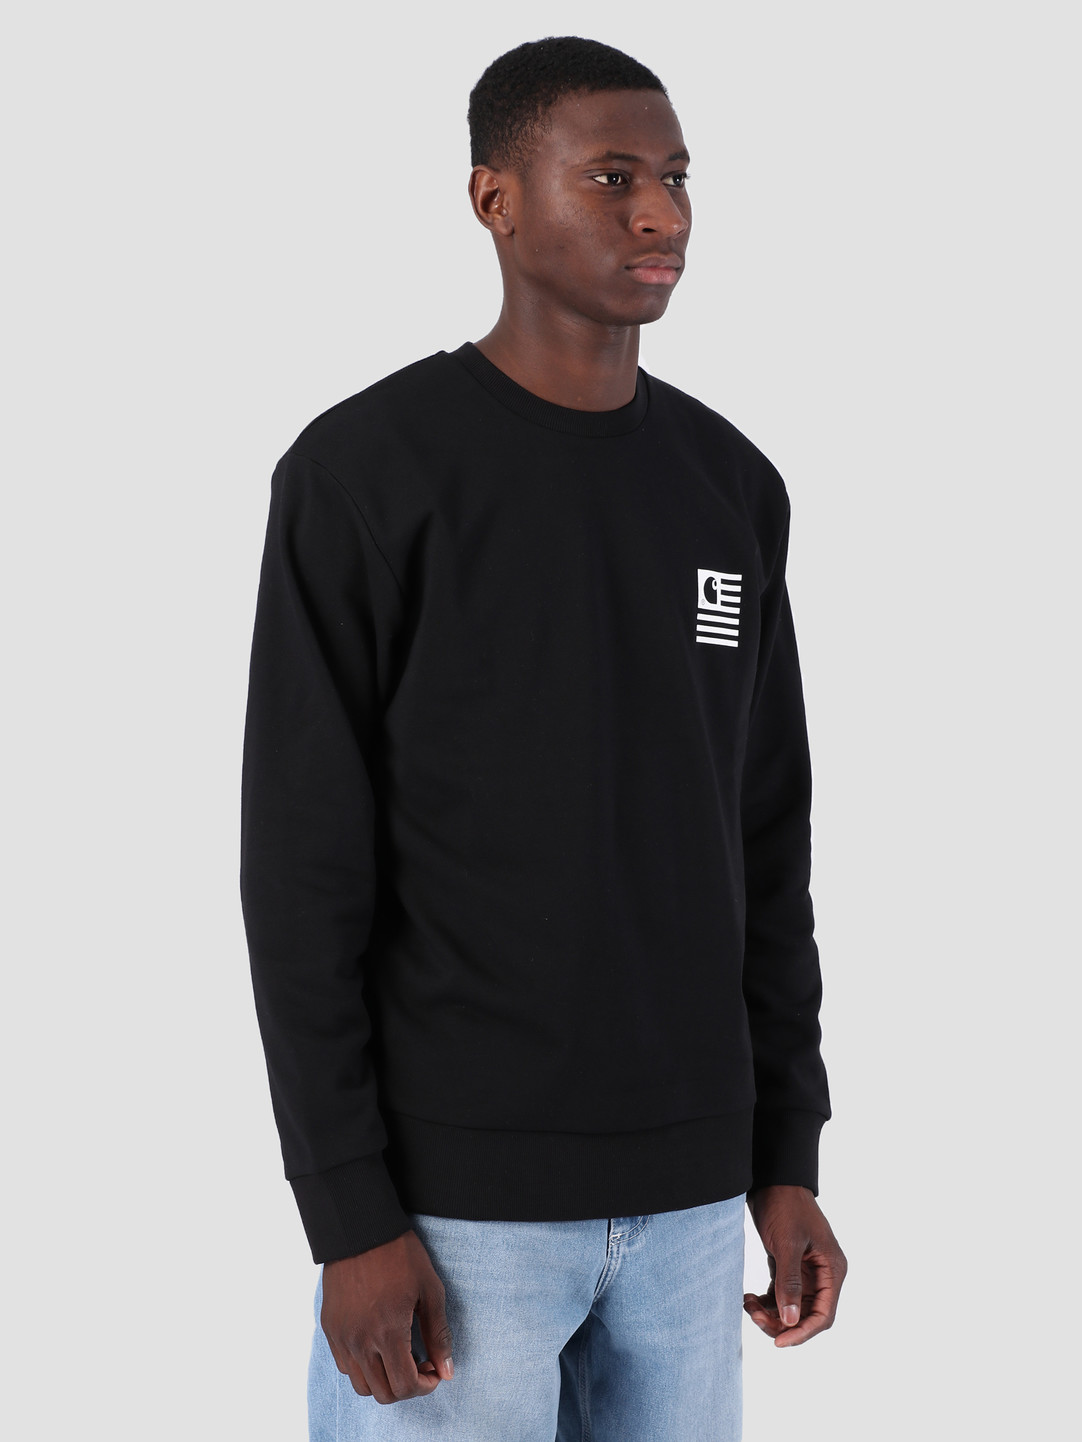 251db810 Carhartt WIP State Patch Sweat Black I026347 | FRESHCOTTON